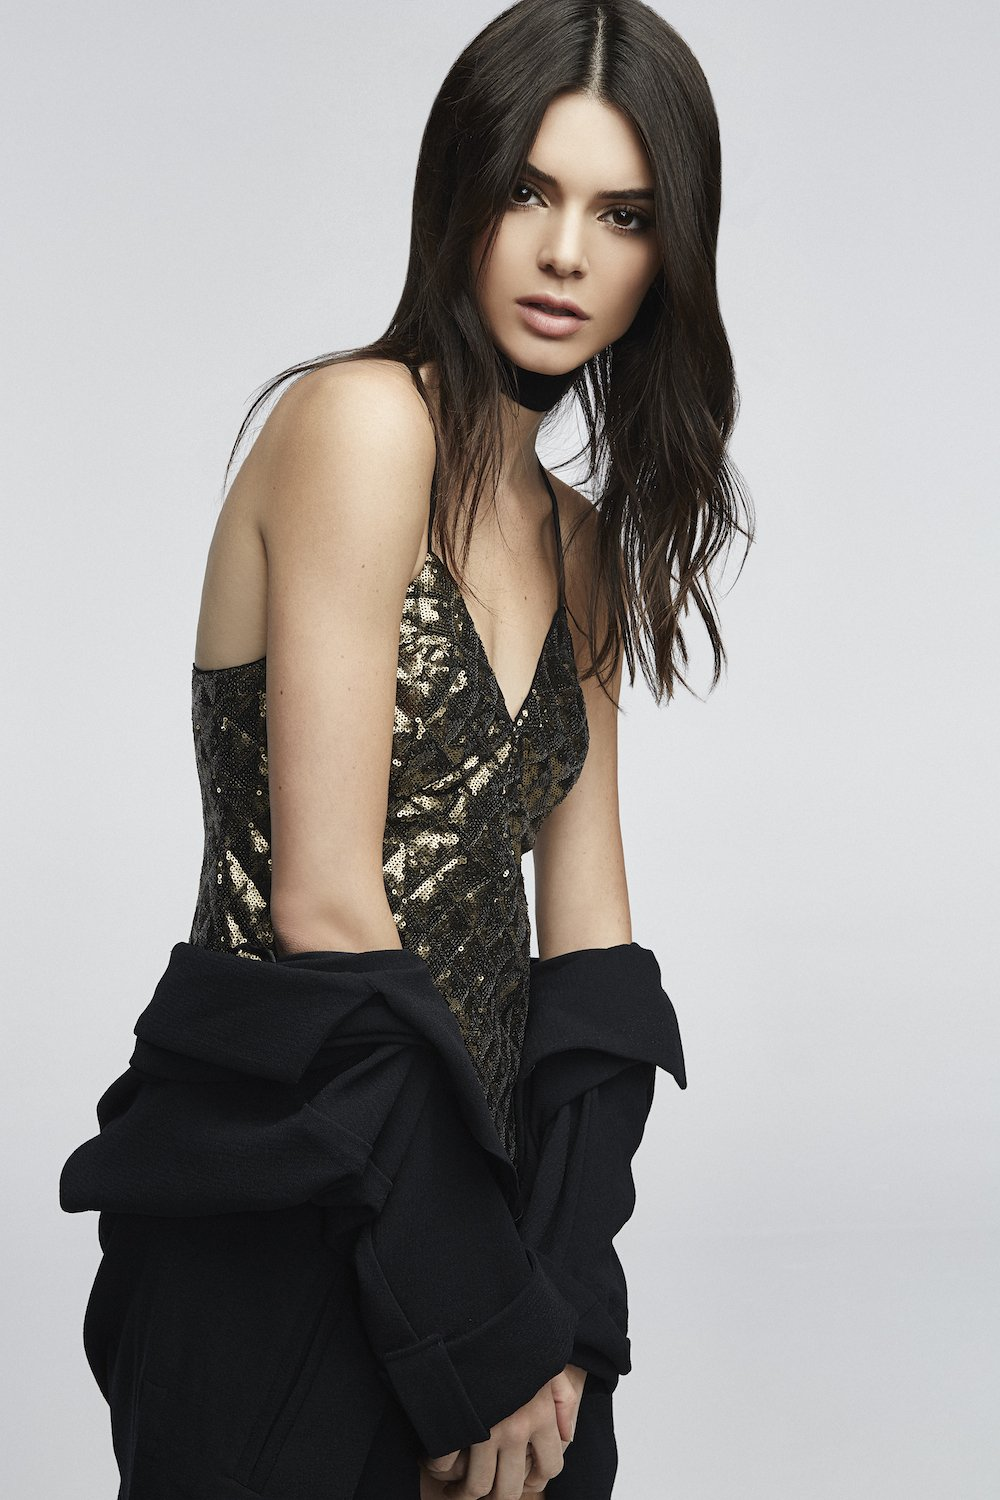 kendall on twitter   u0026quot tis the season for new holiday pieces available only at  pacsun